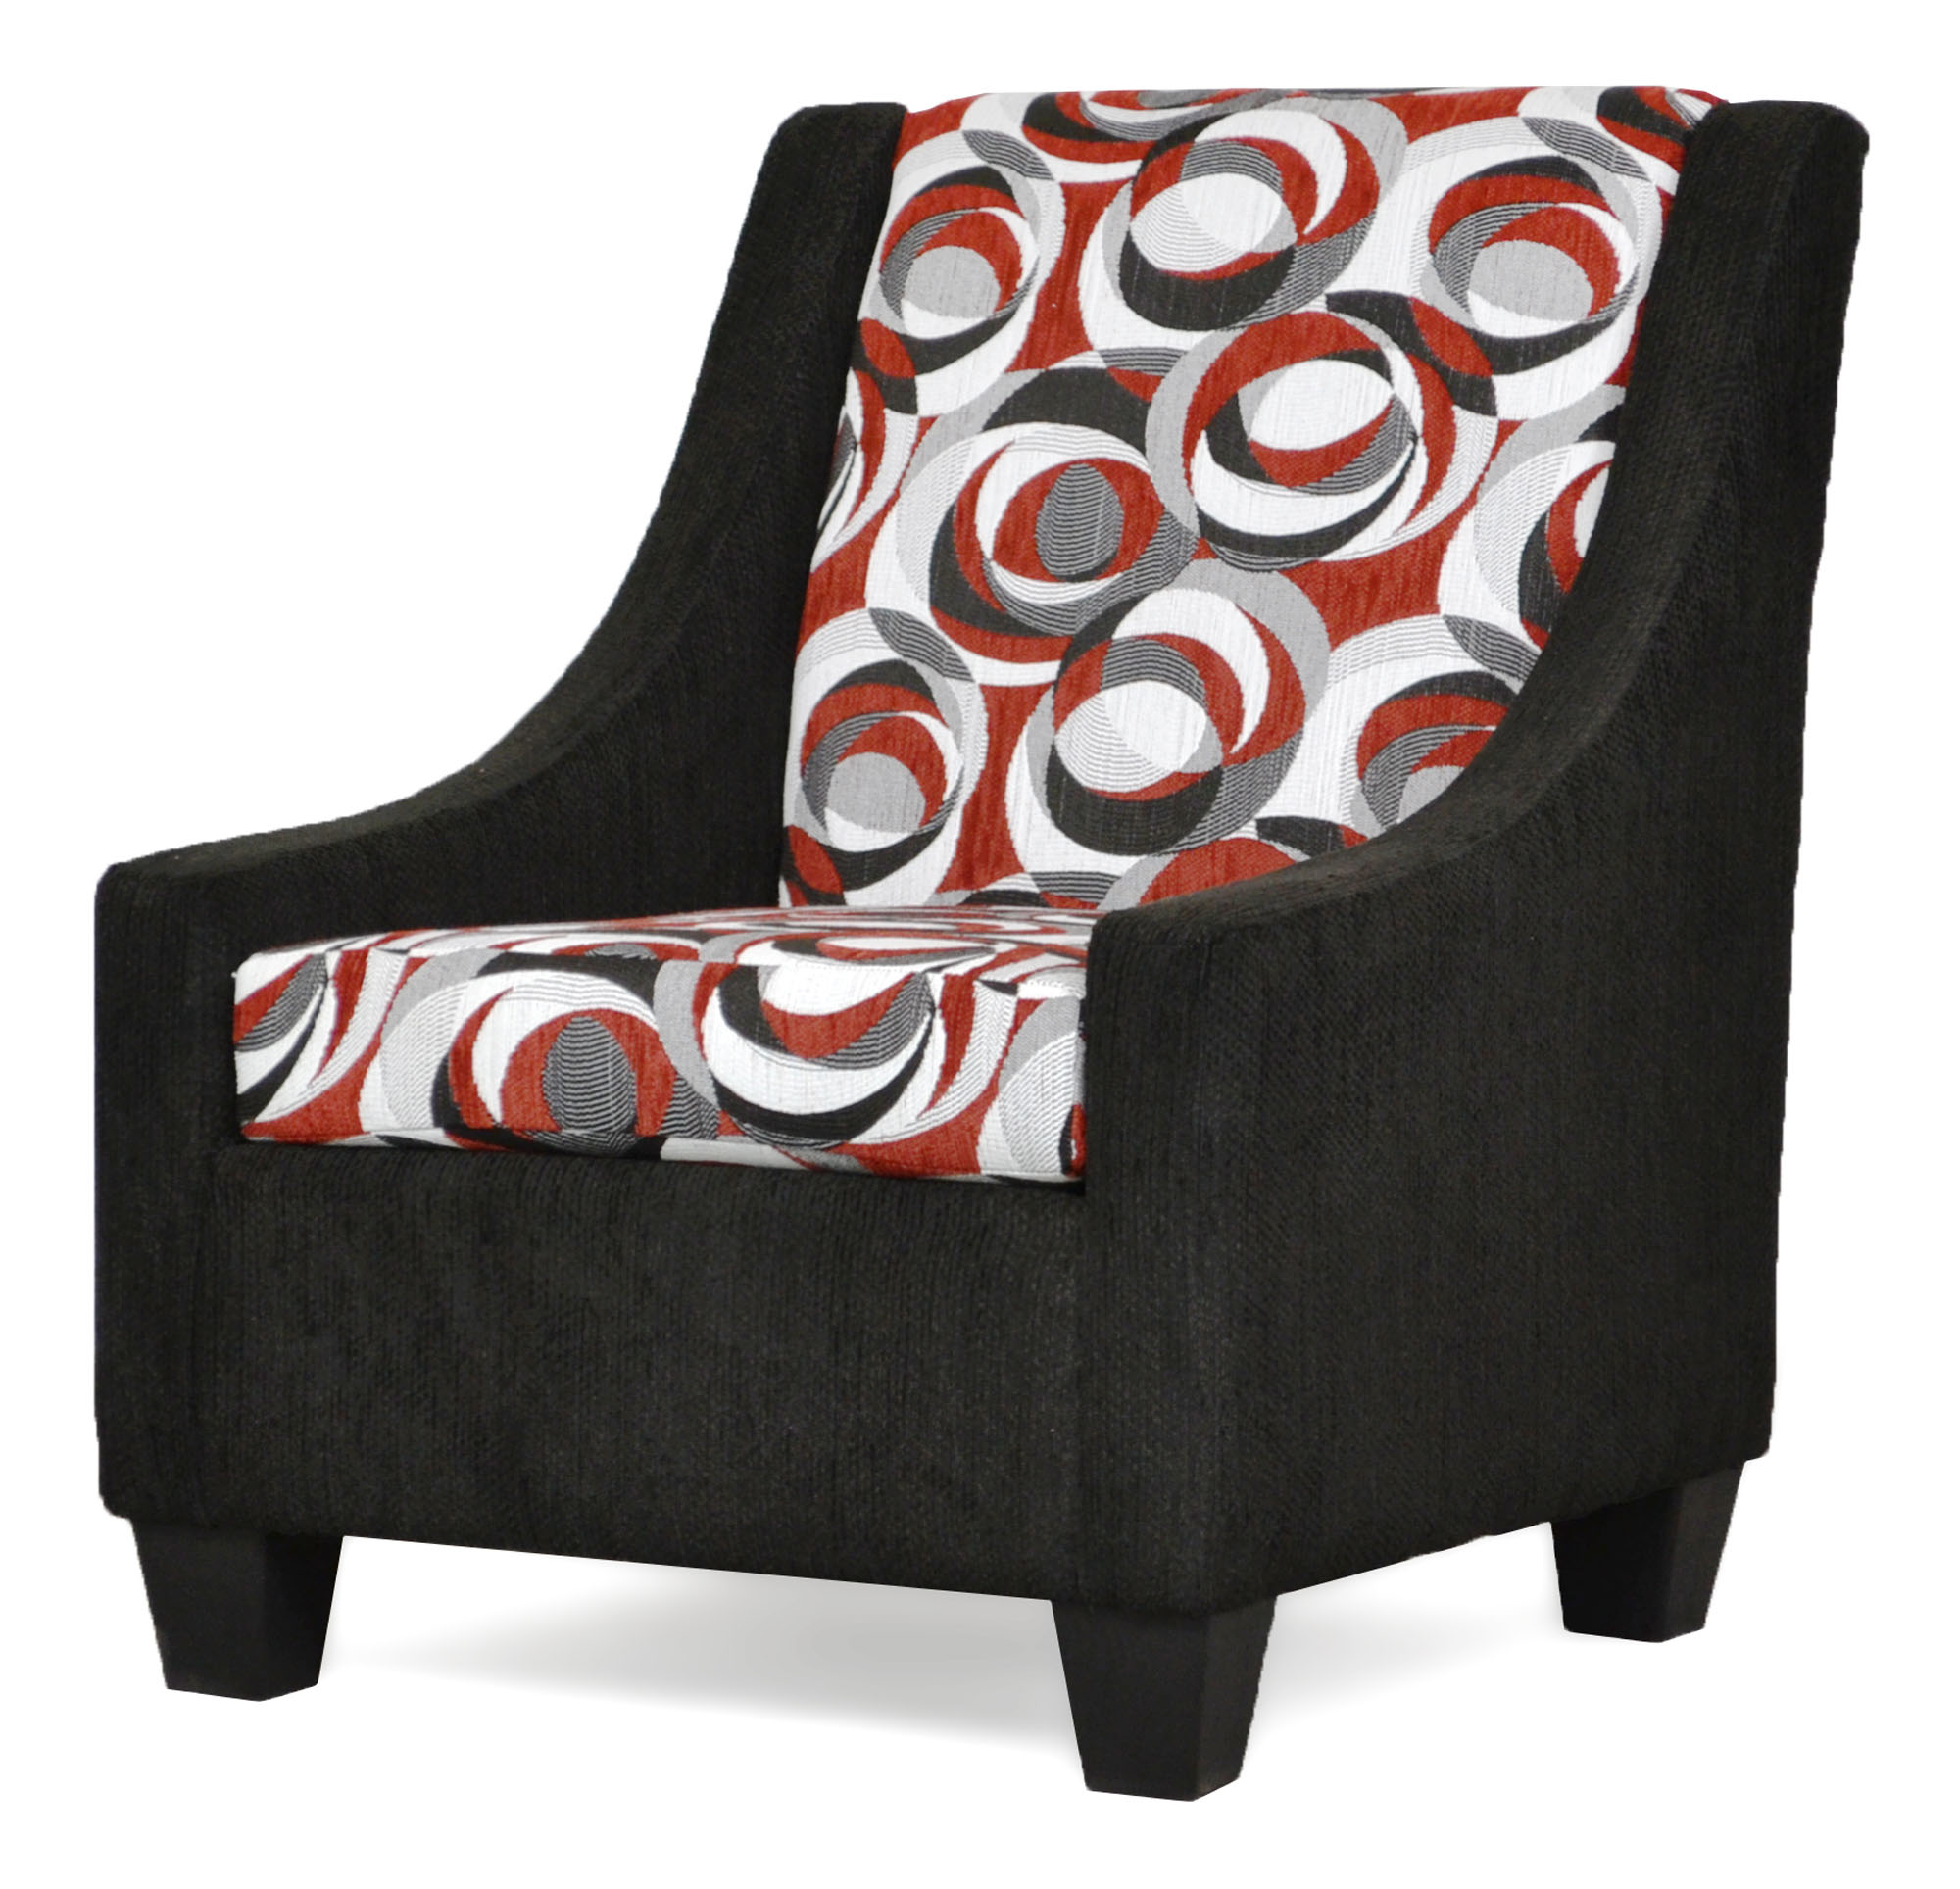 390 Luna Caviar Accent Chair